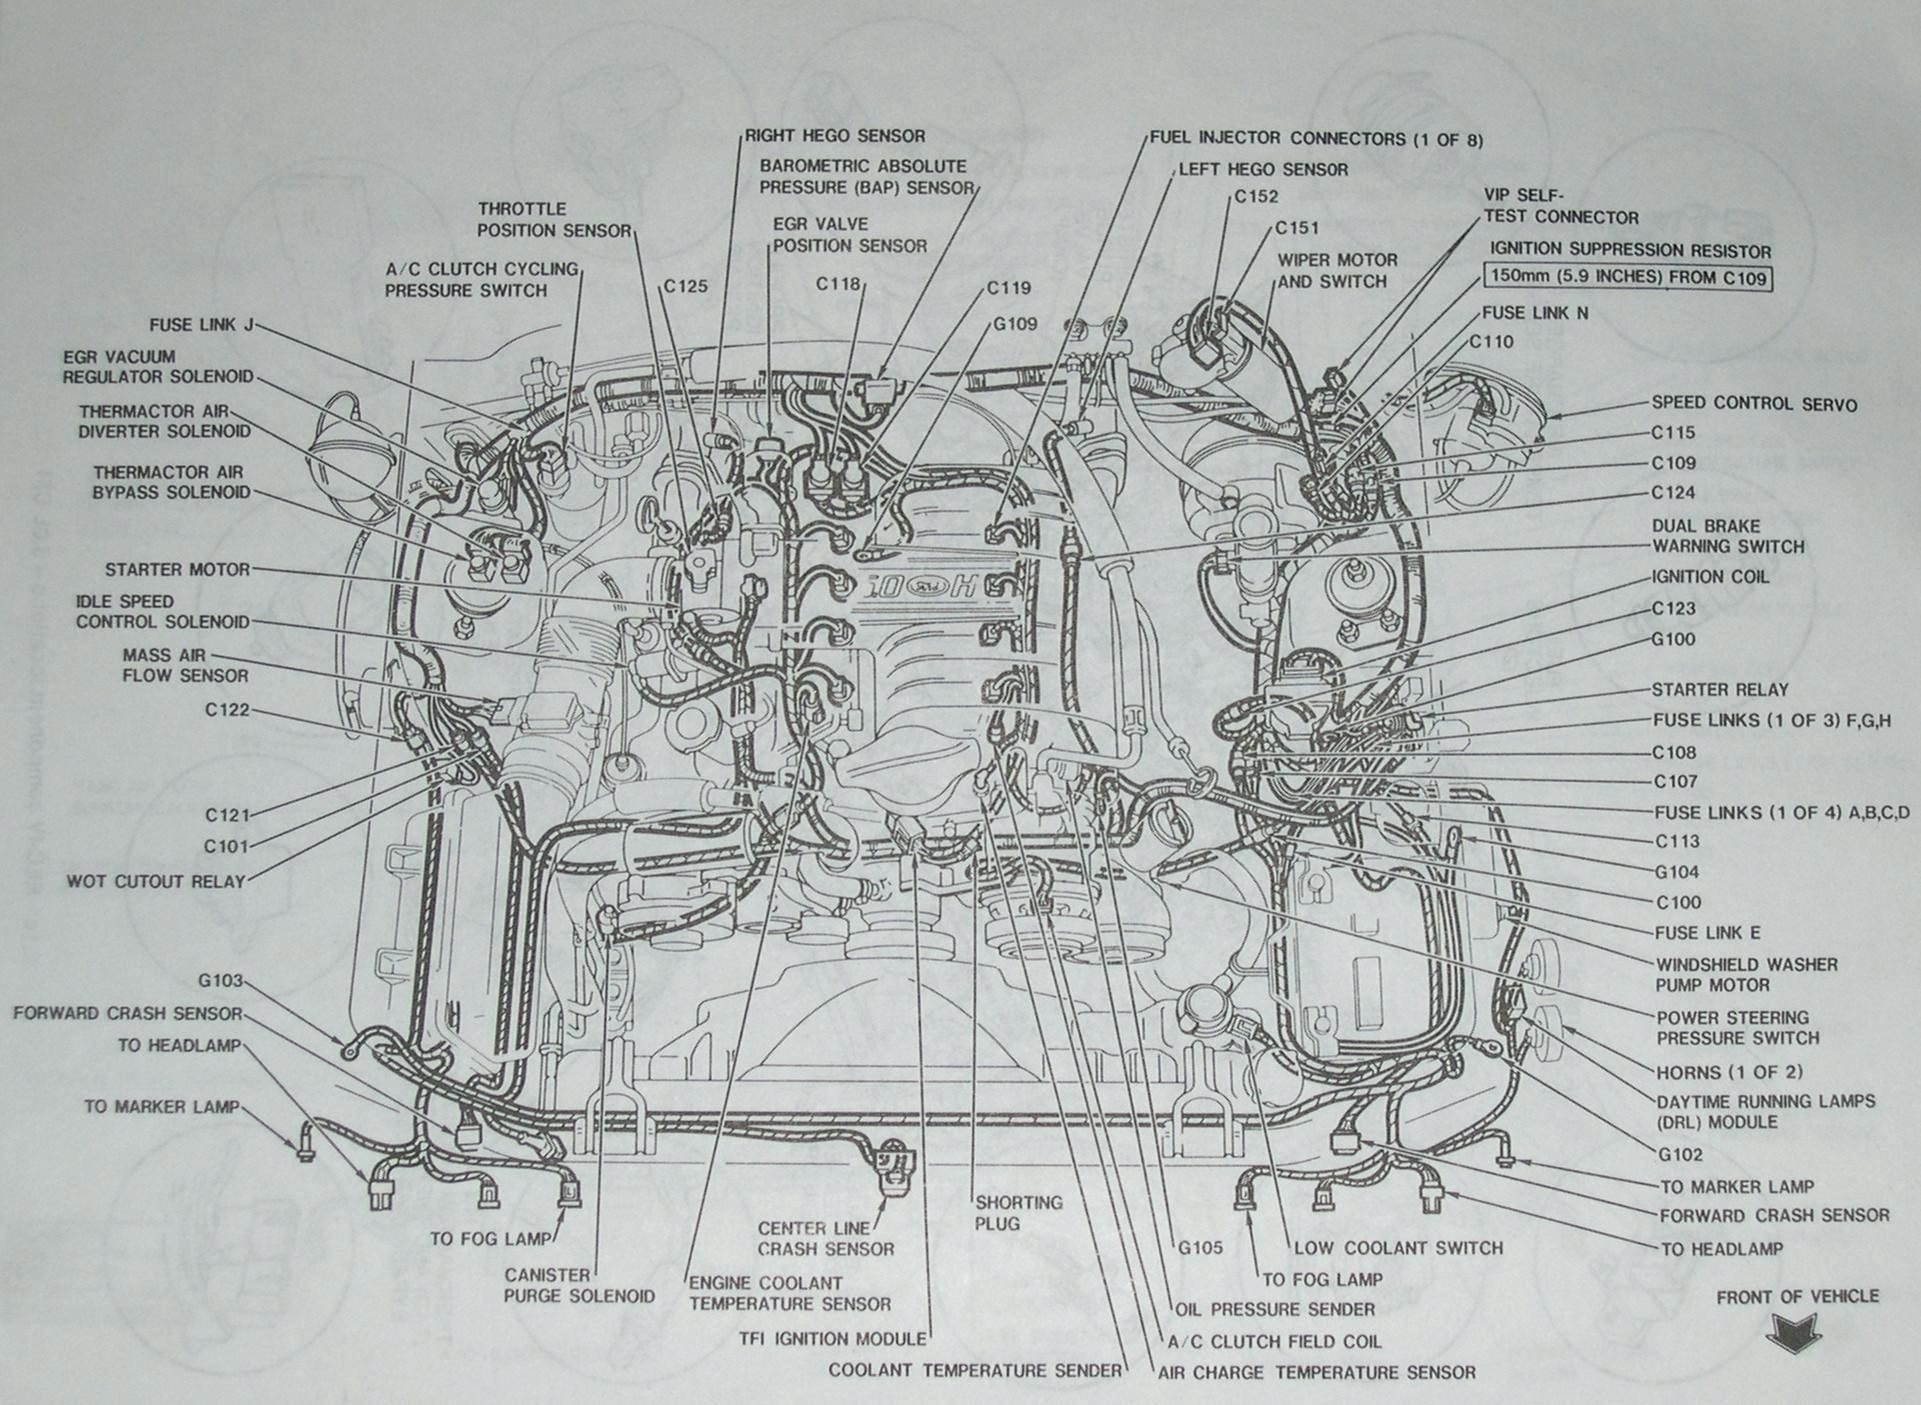 hight resolution of 2001 mustang wiring harness wiring diagram structure 94 mustang alternator wiring harness